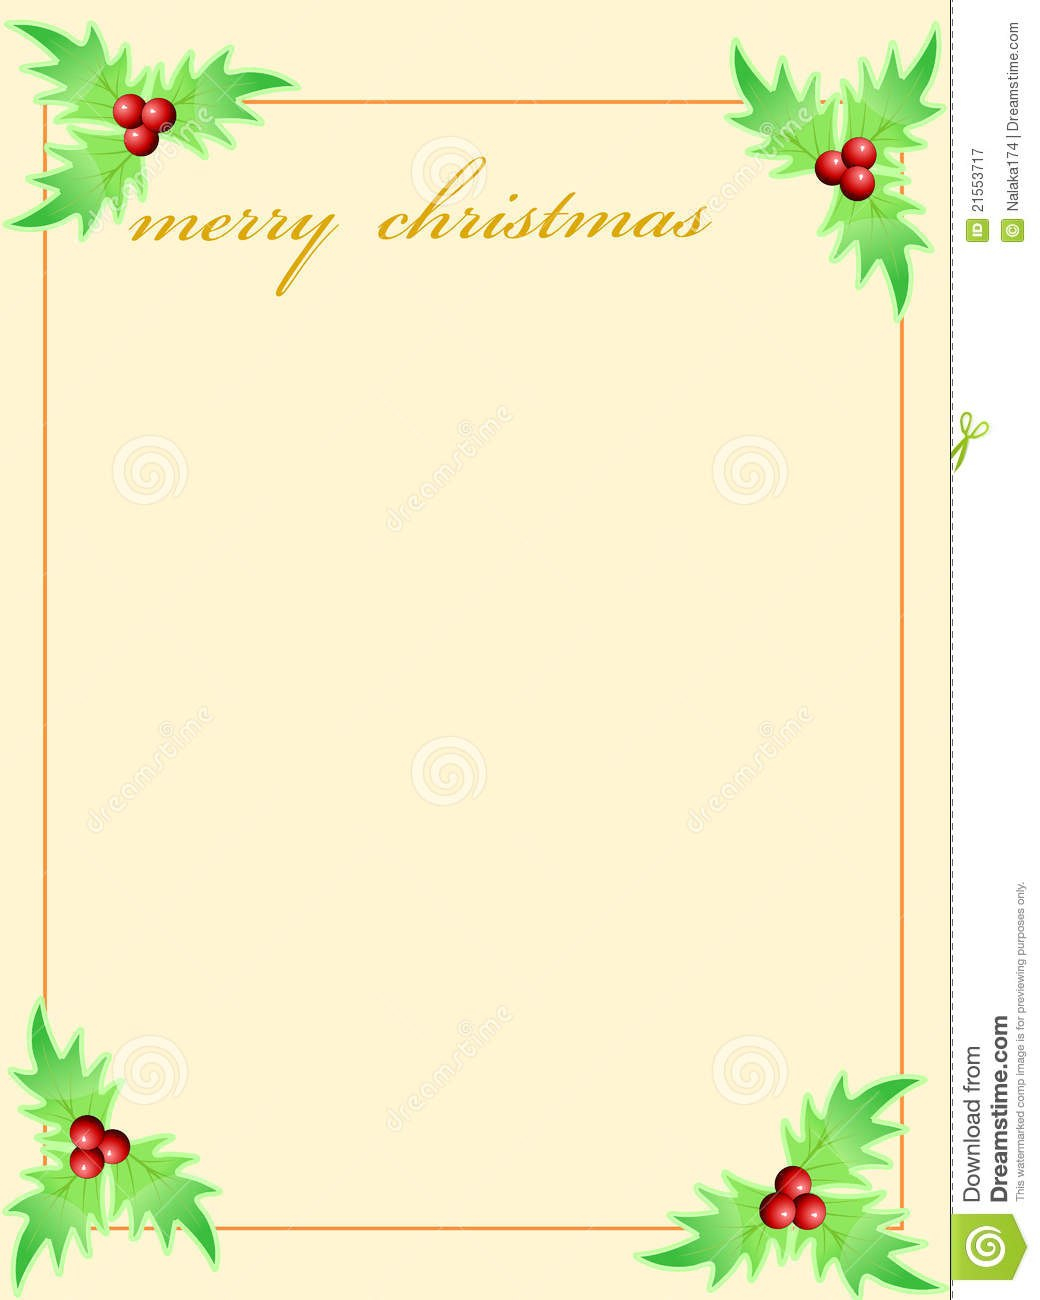 Holiday Greeting Card Template Images  Free Christmas Card Intended For Blank Christmas Card Templates Free